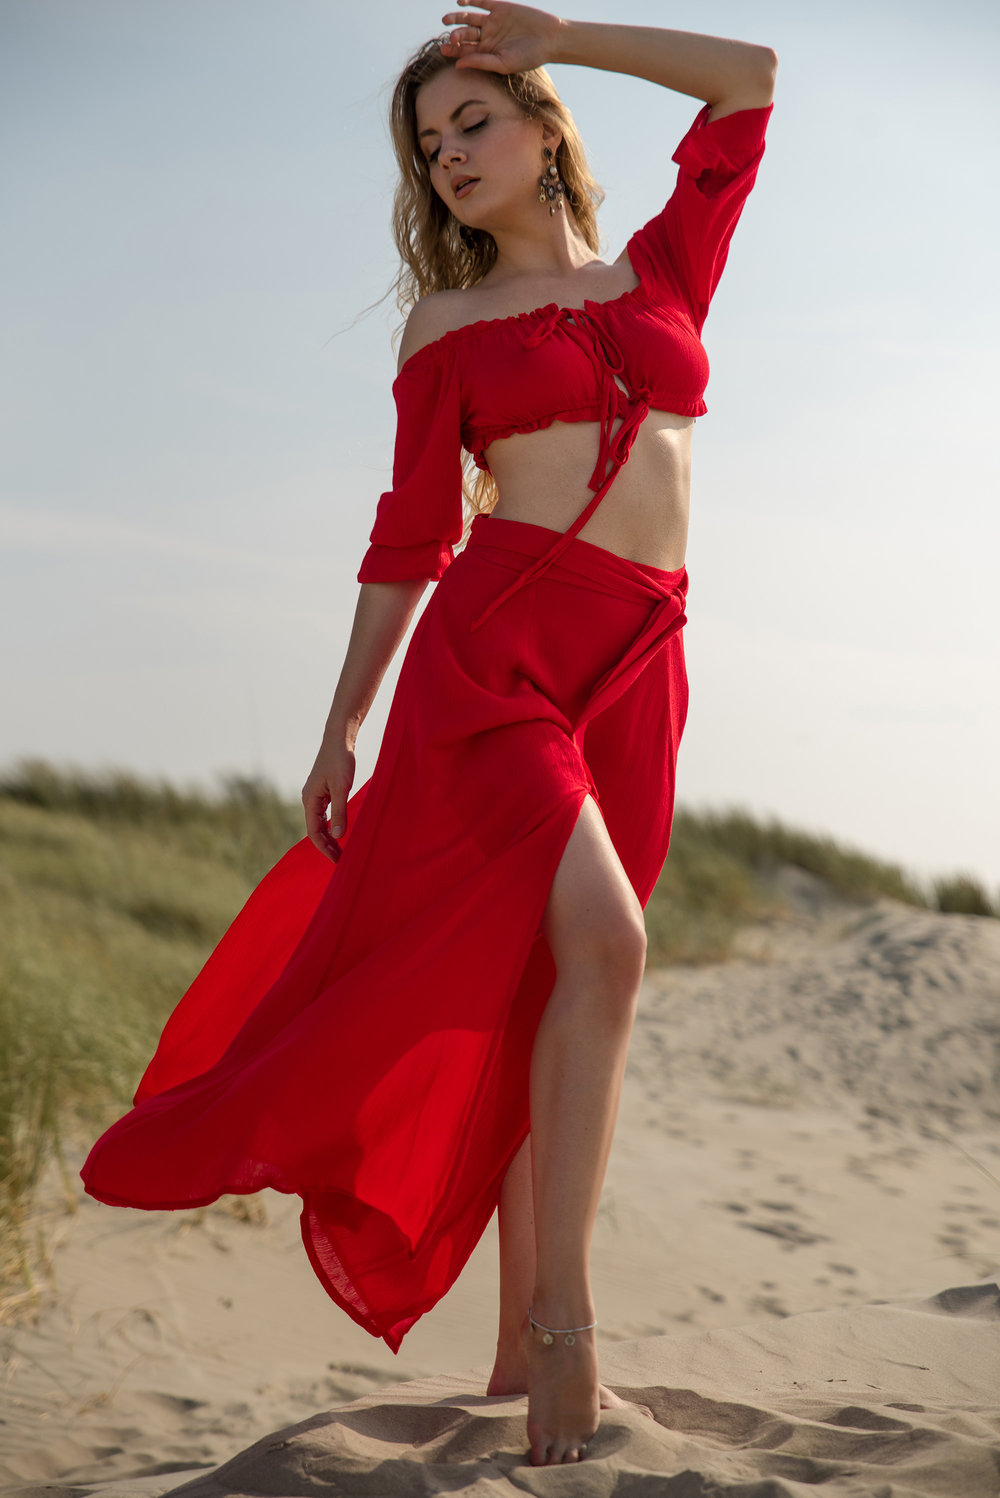 beachware red outfit_.jpg